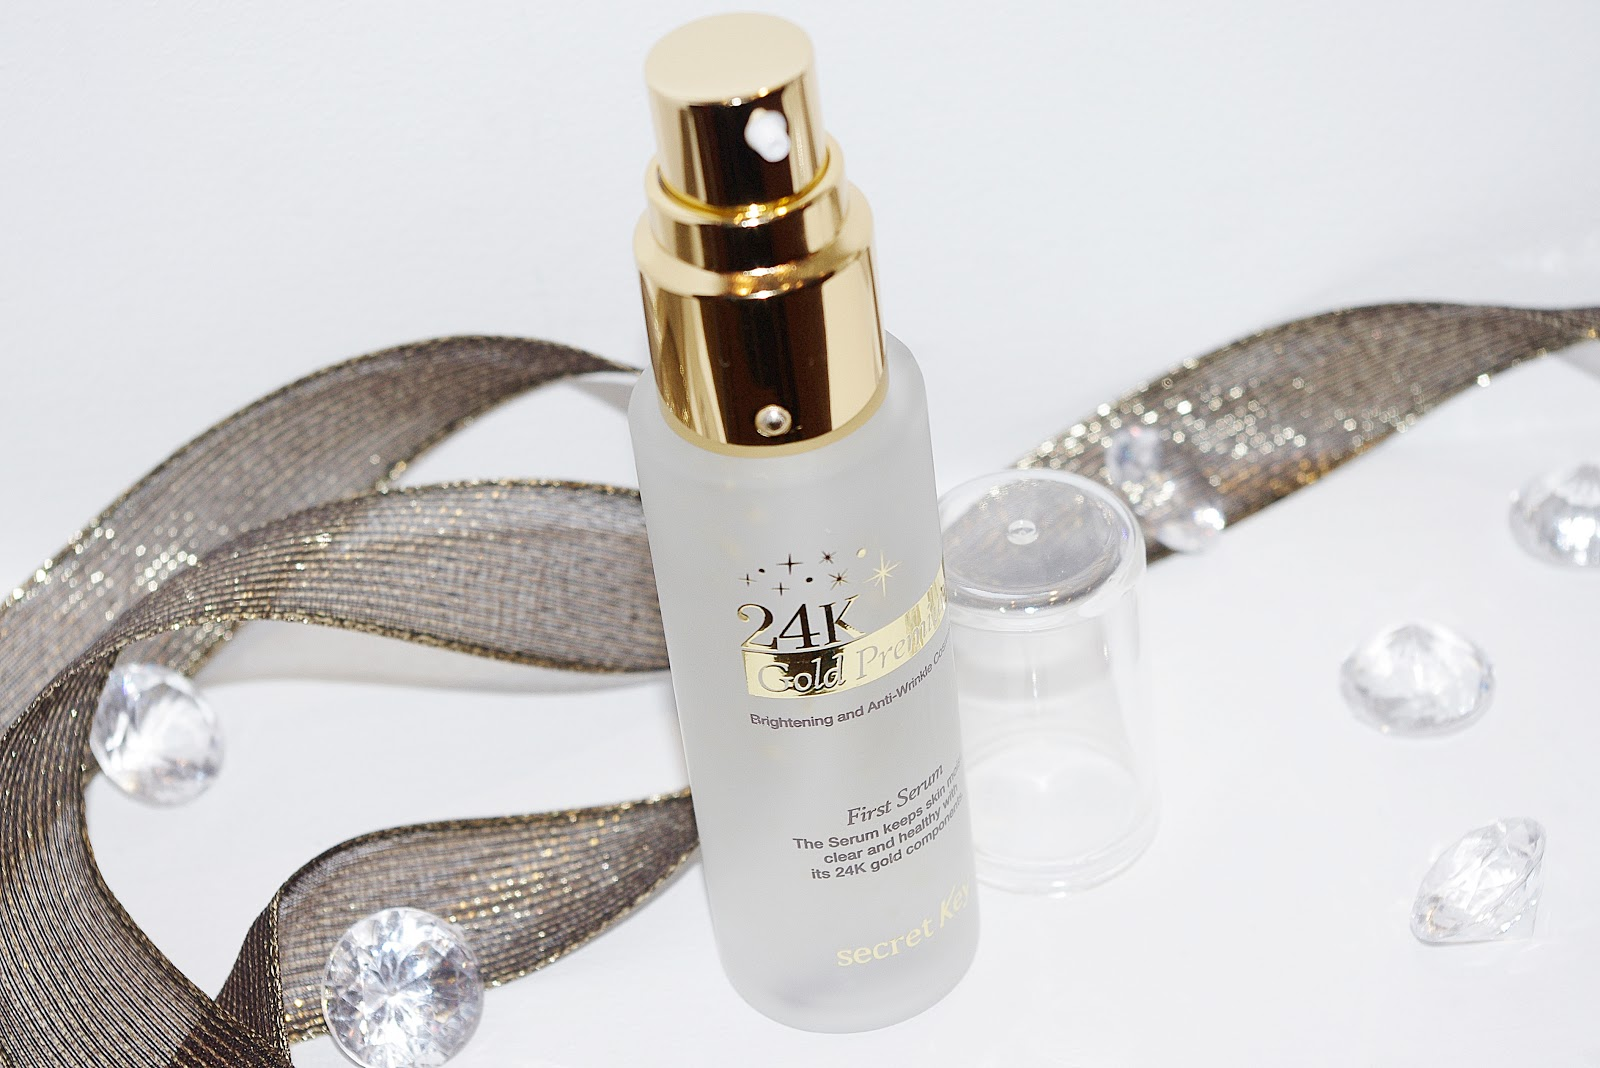 SecretKey 24K Gold Premium First Serum